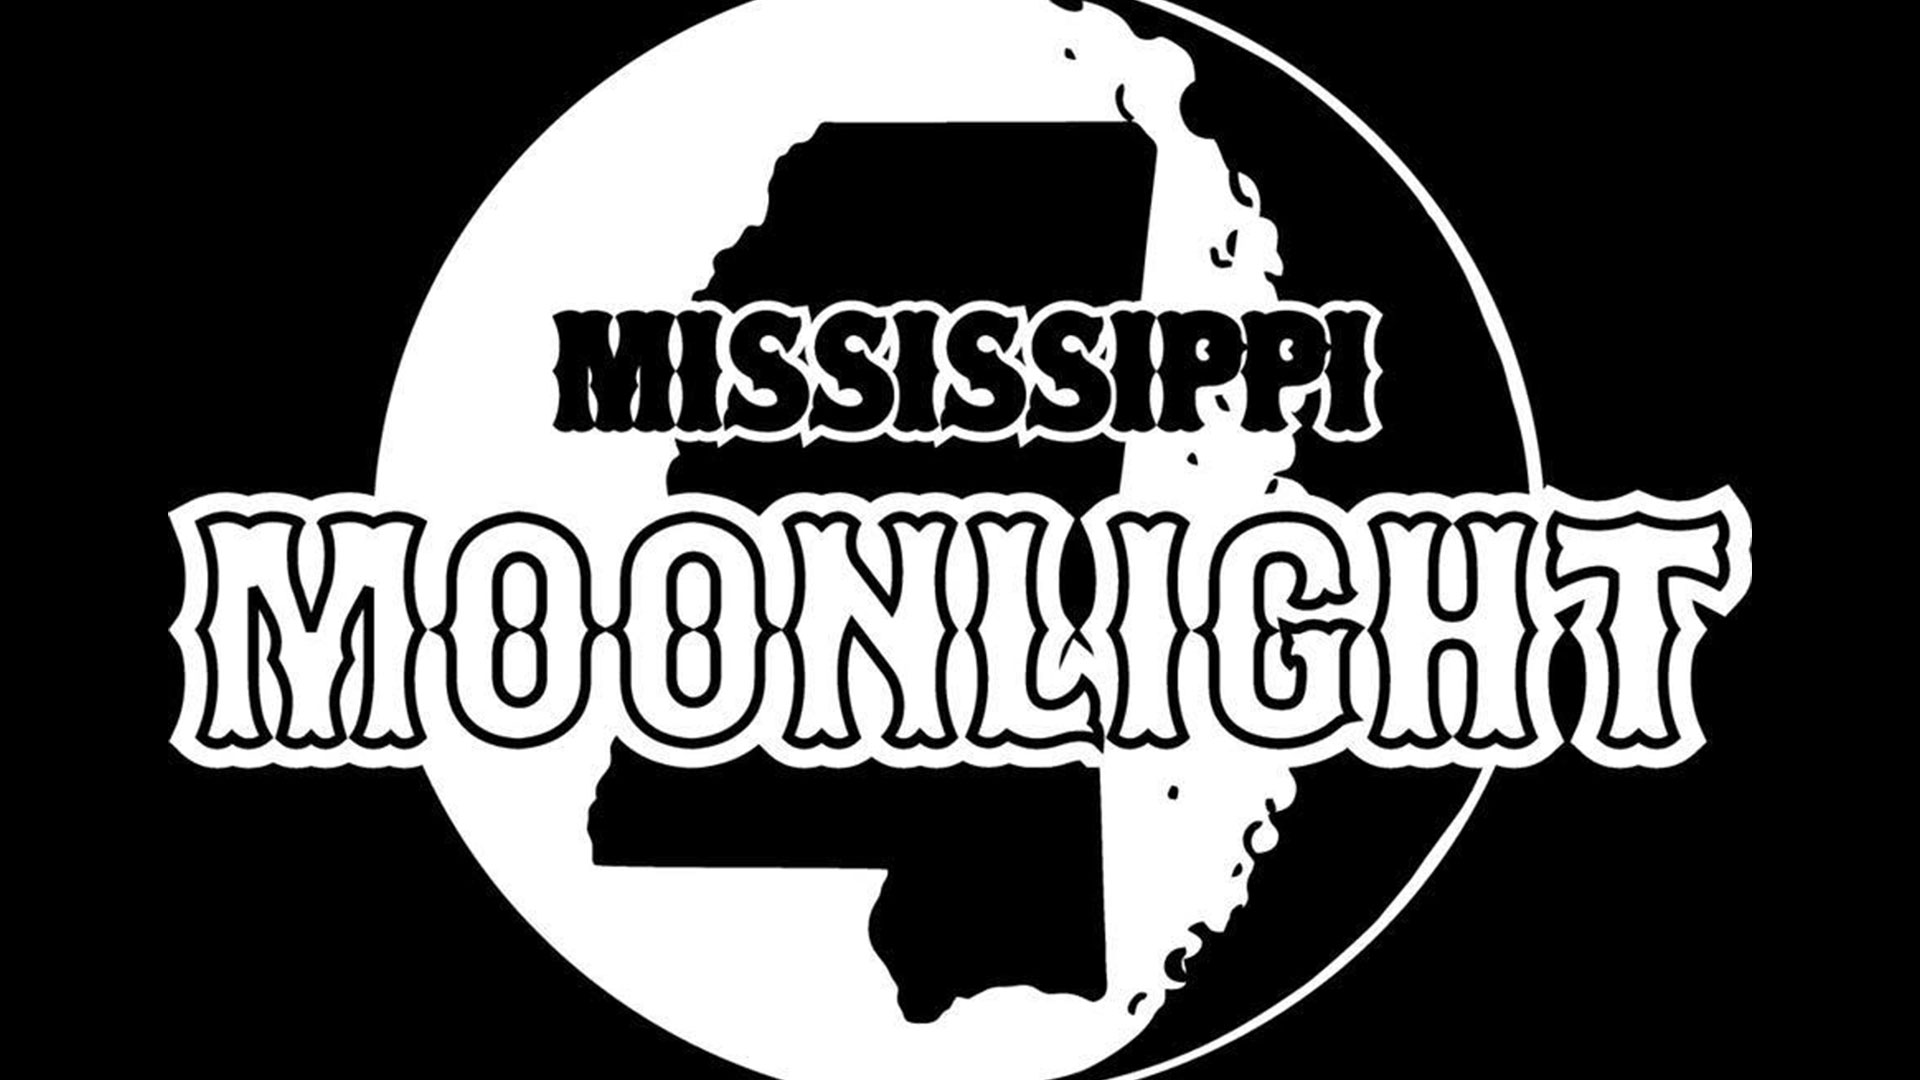 mississippi-moonlight.jpg